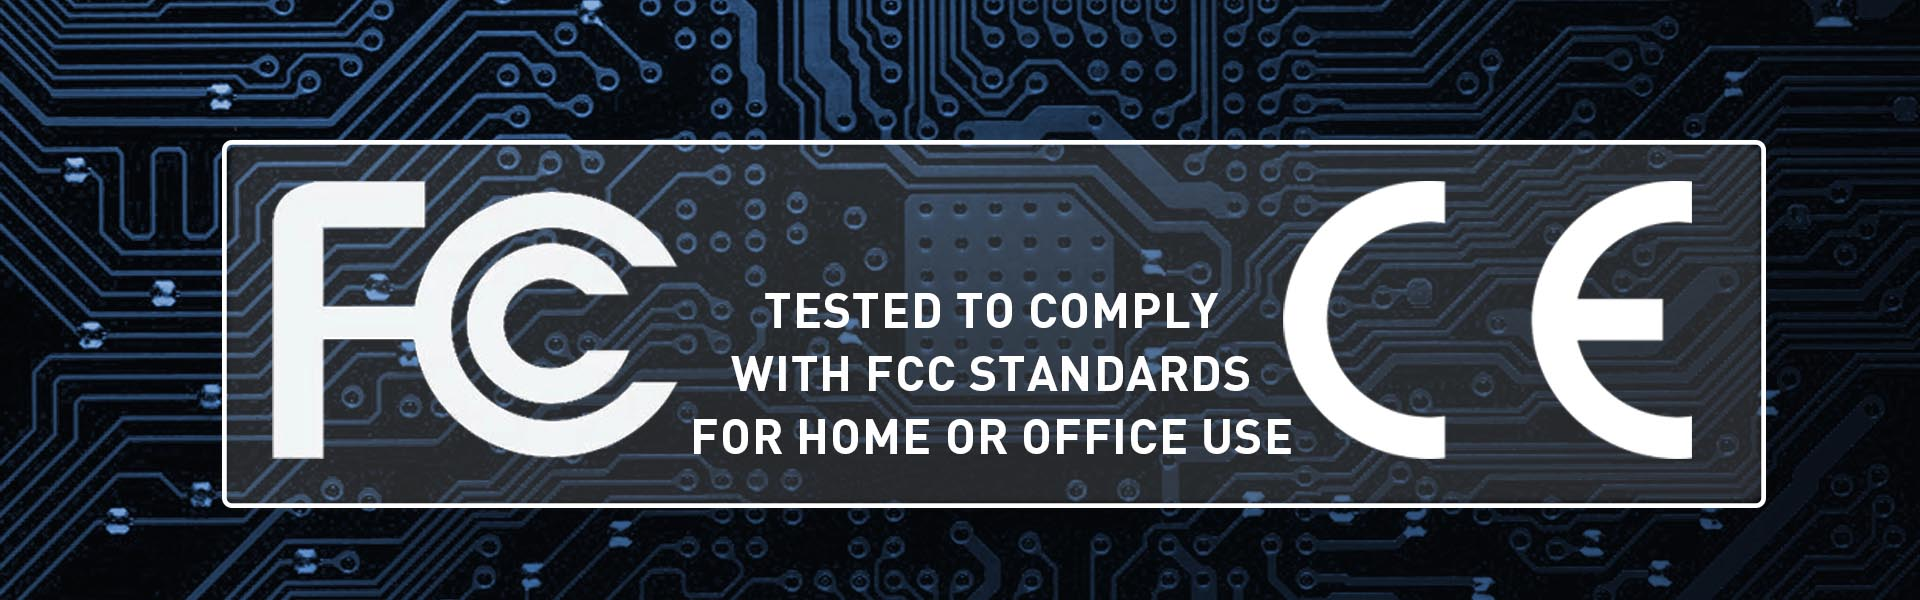 EMI-Compliance-CE-FCC-computer-electromagnetic-interference